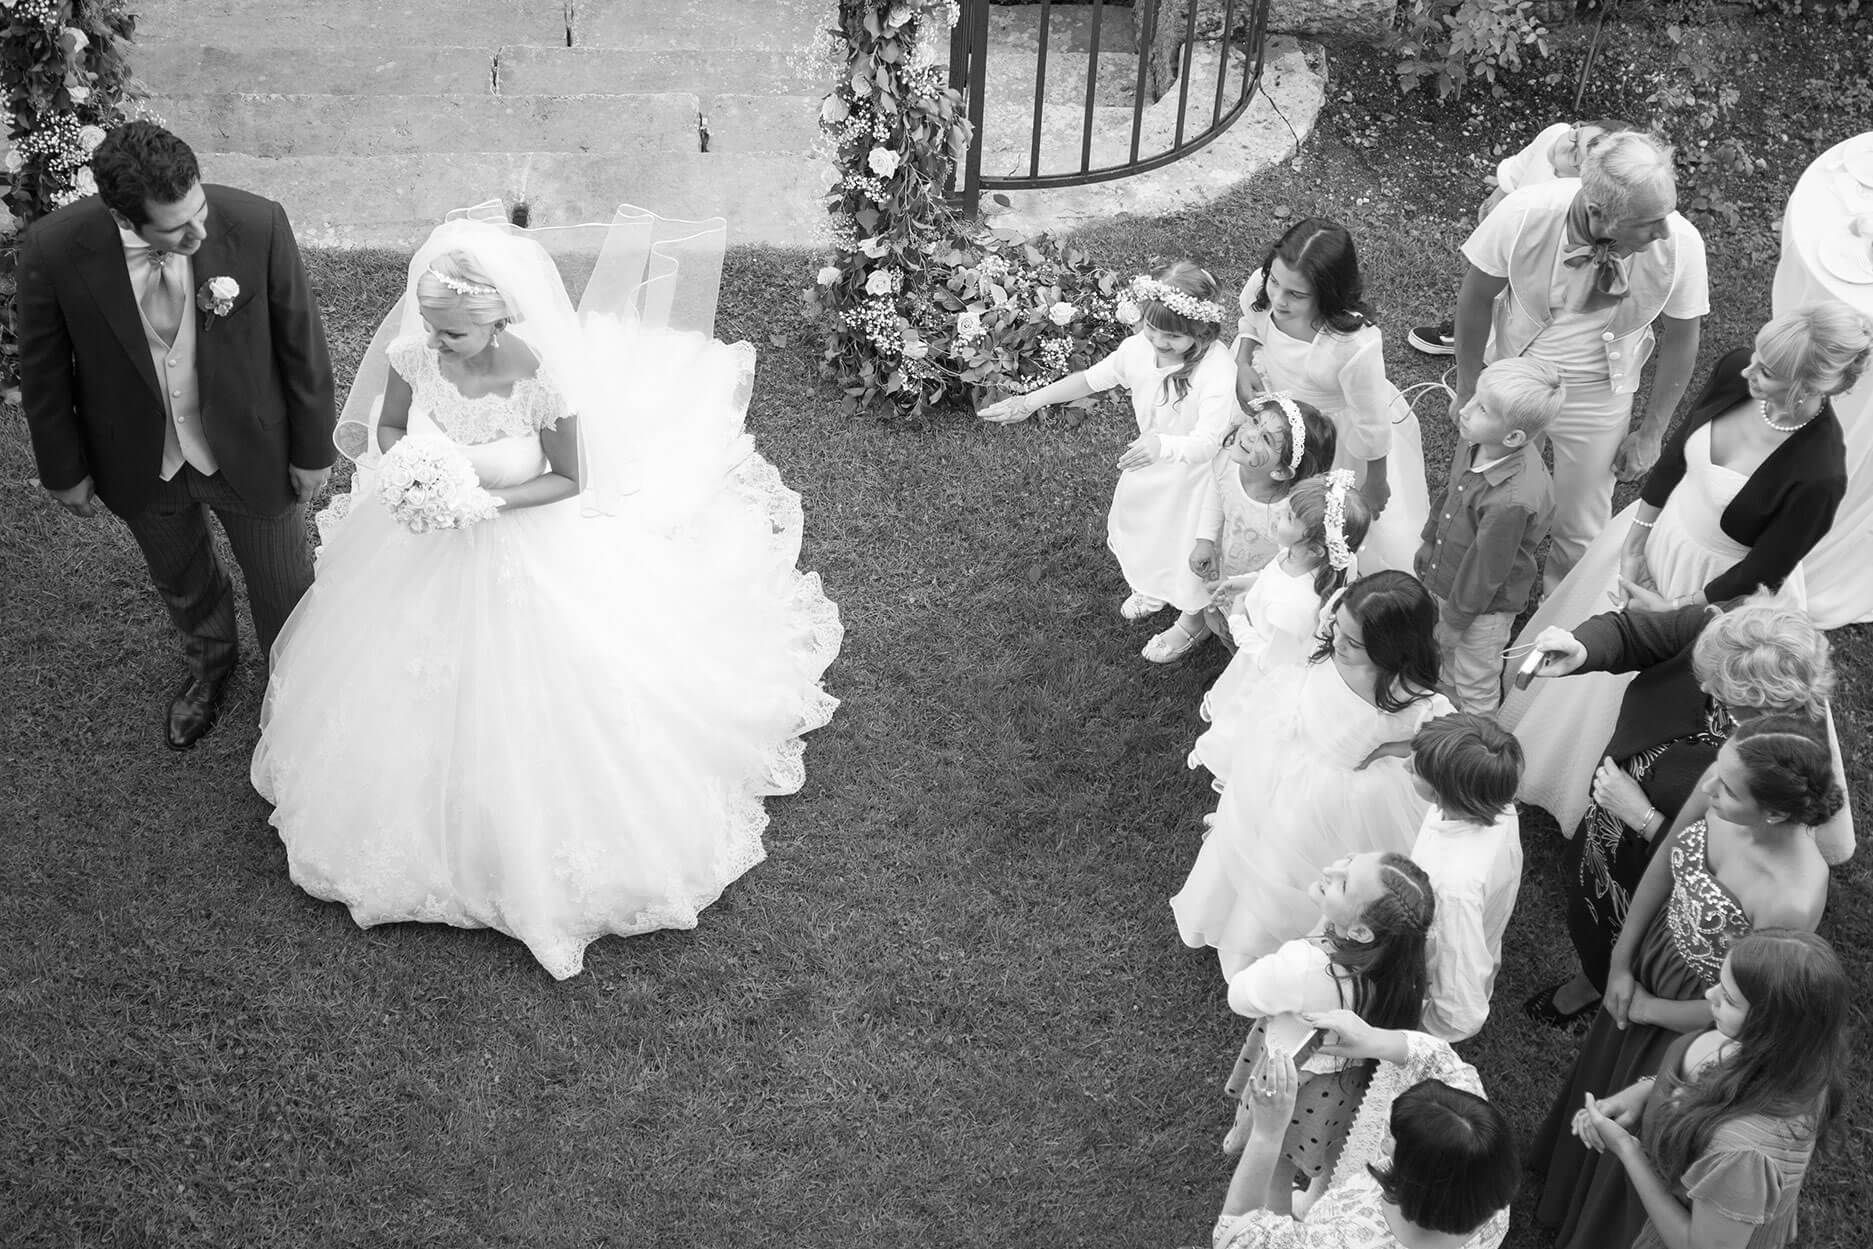 Francesca-Ferrati-WeddingIMG_0033